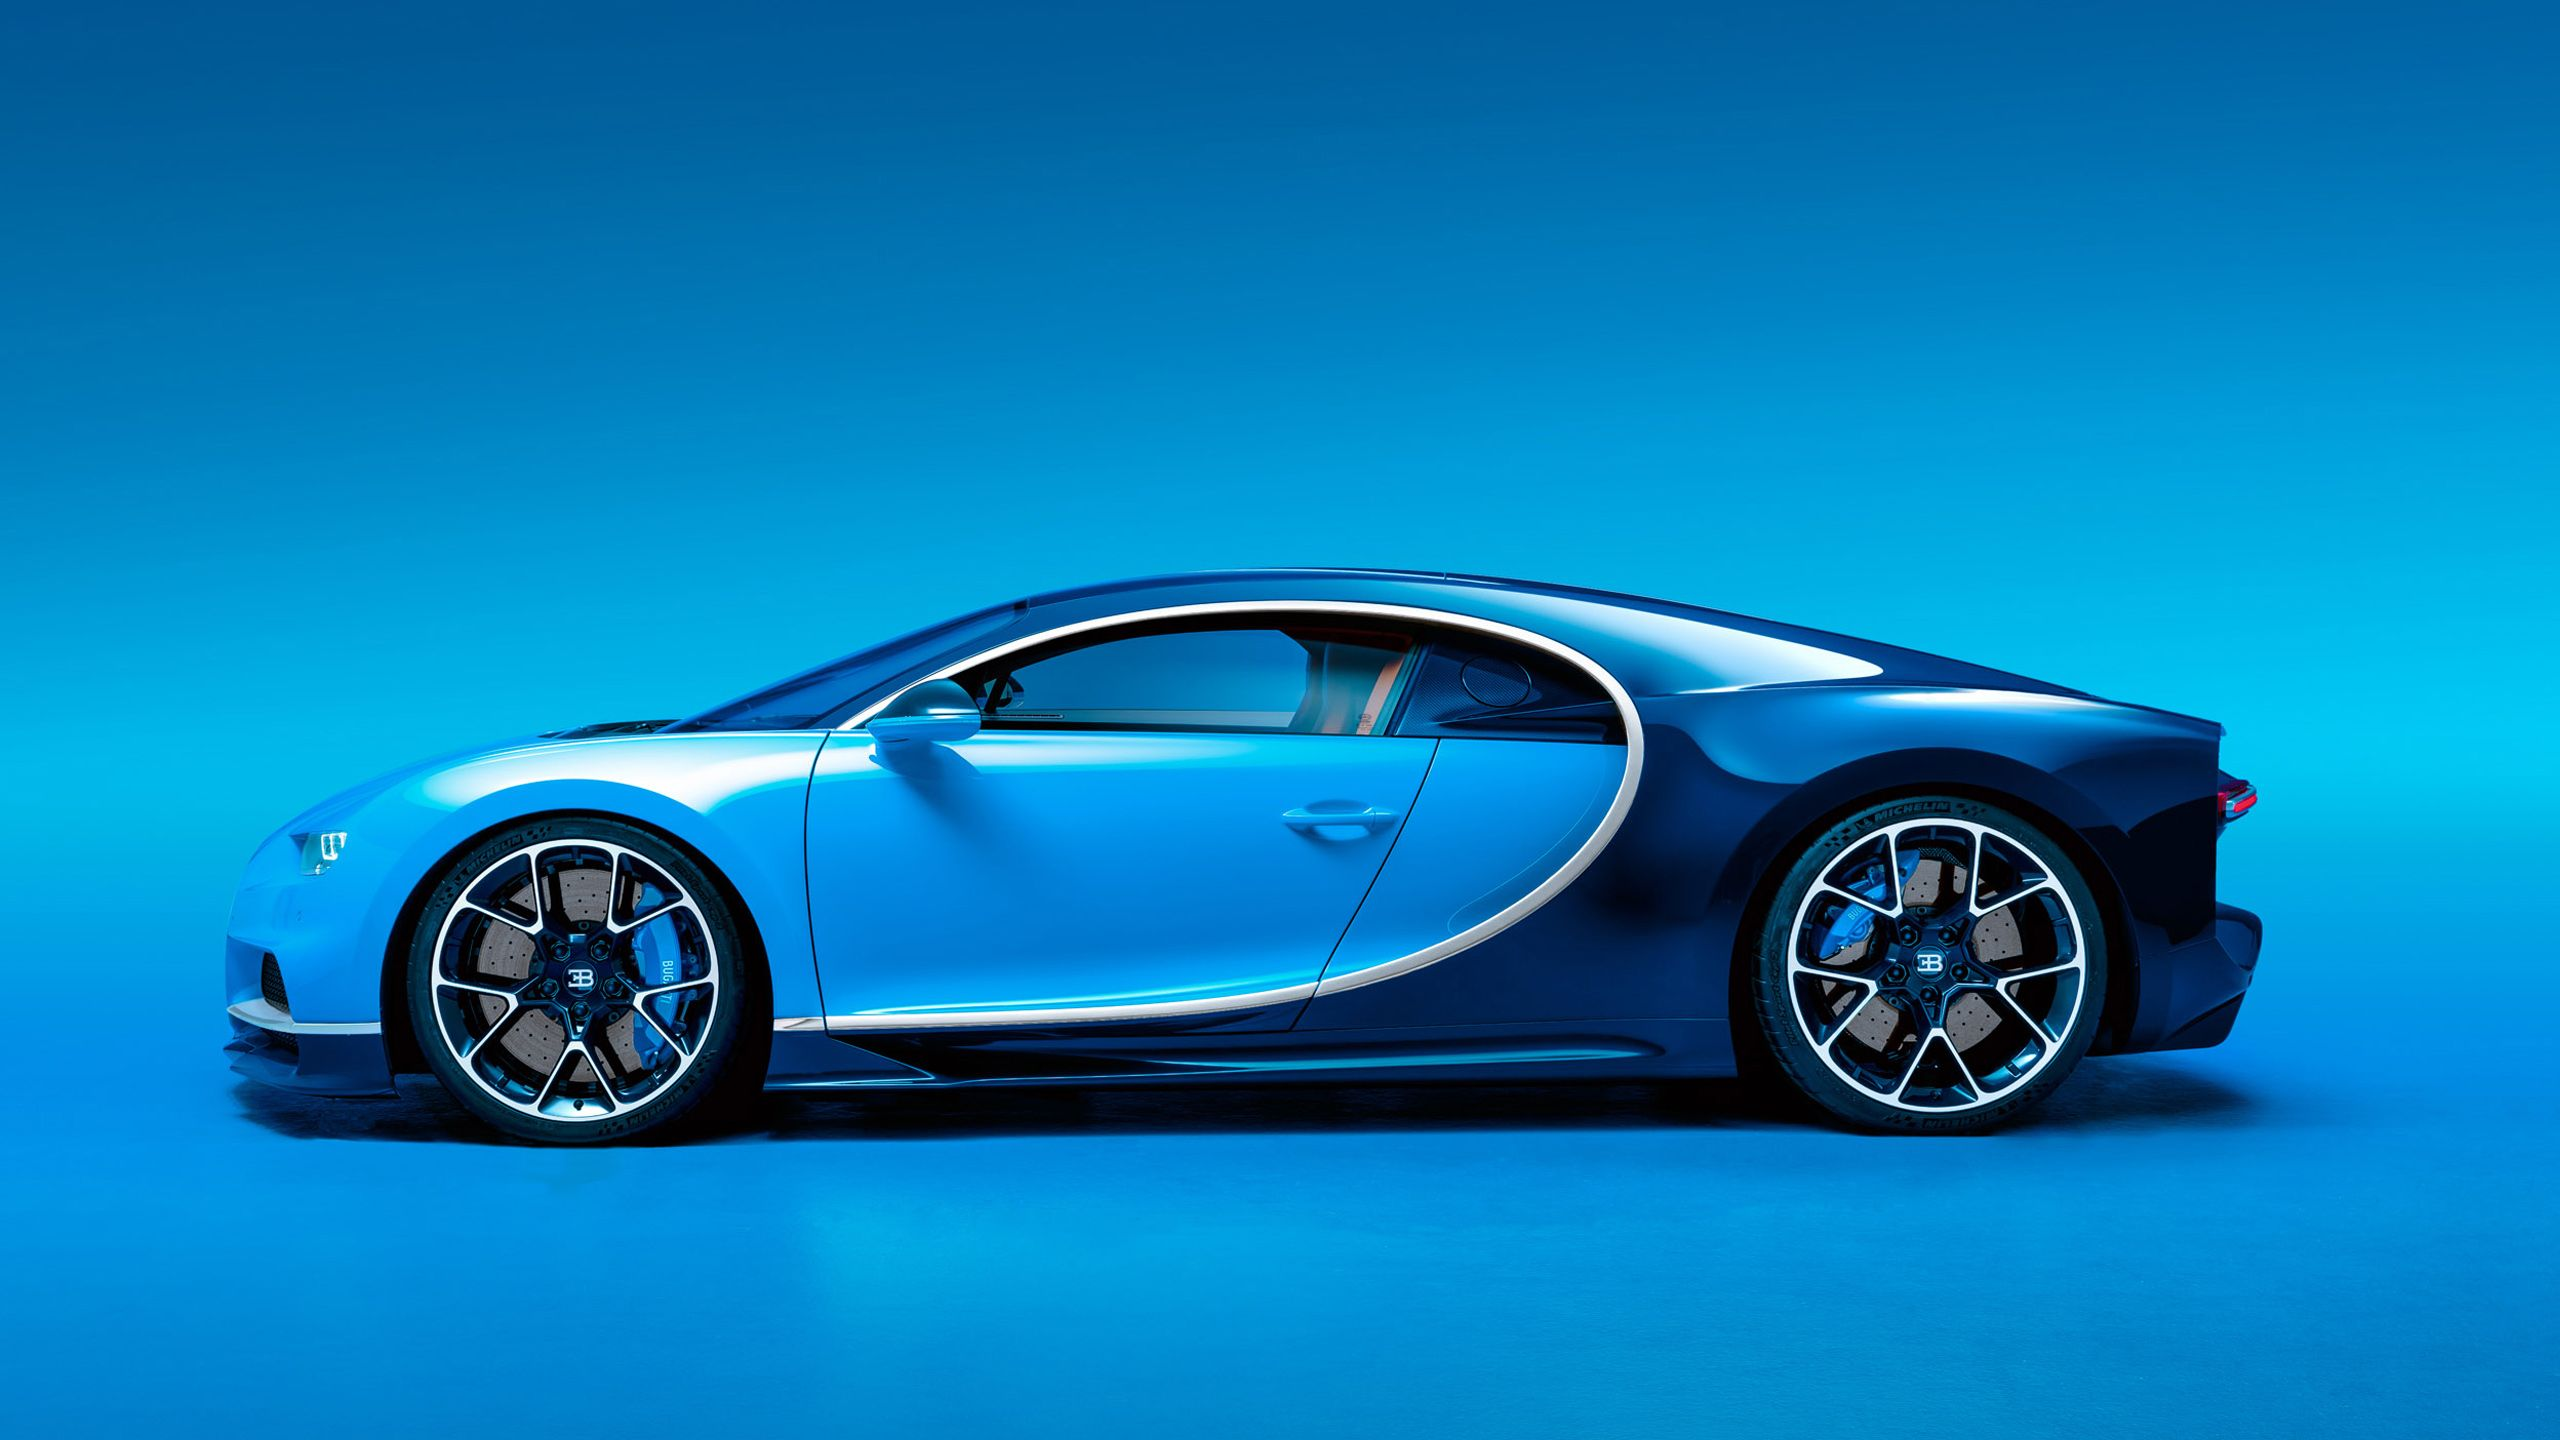 Bugatti Chiron HD Backgrounds 10 | Bugatti Chiron HD Backgrounds |  Pinterest | Hd Backgrounds